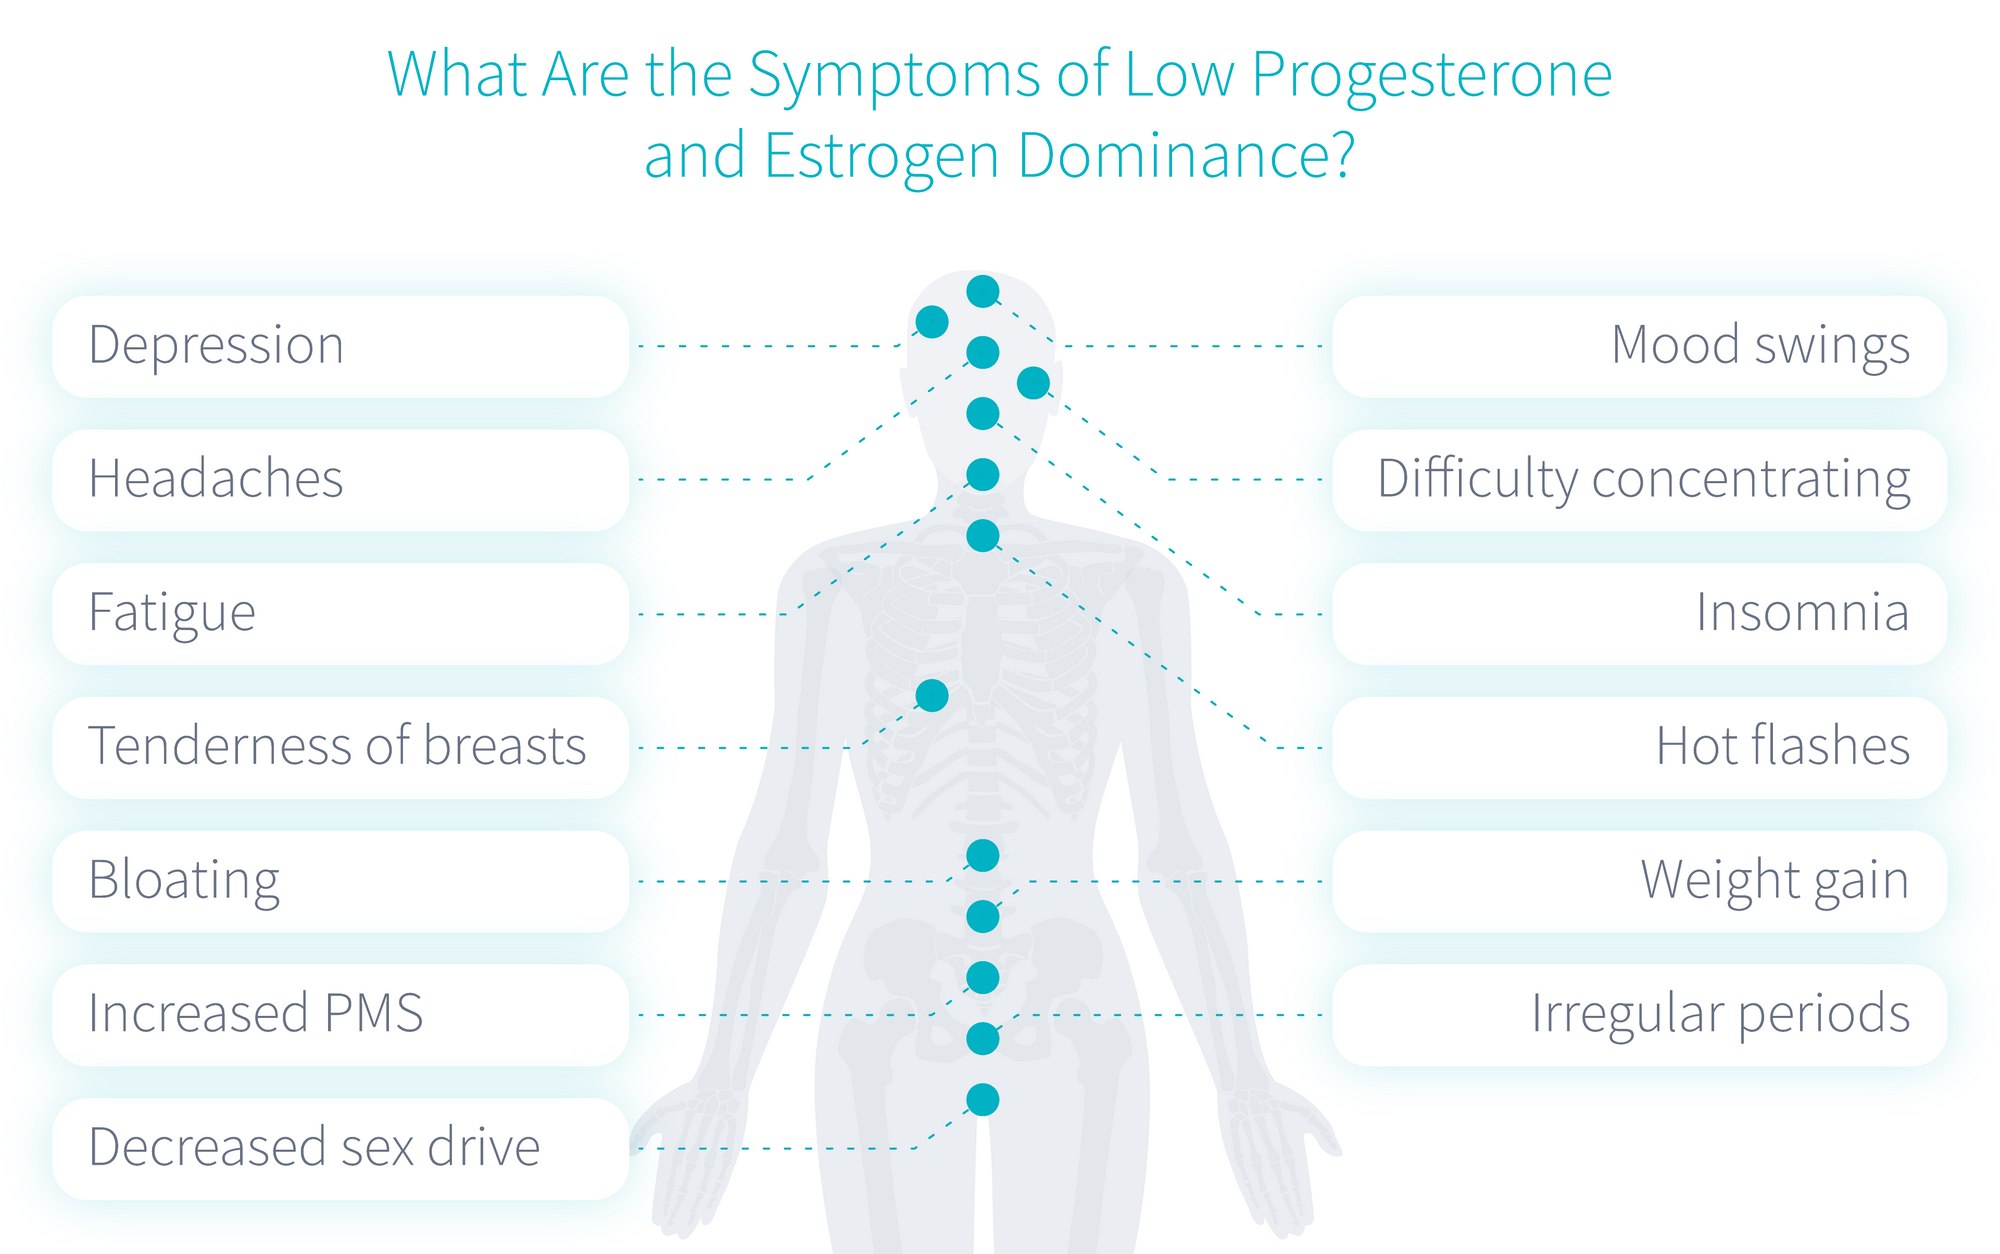 How to Naturally Increase Your Progesterone Levels Without